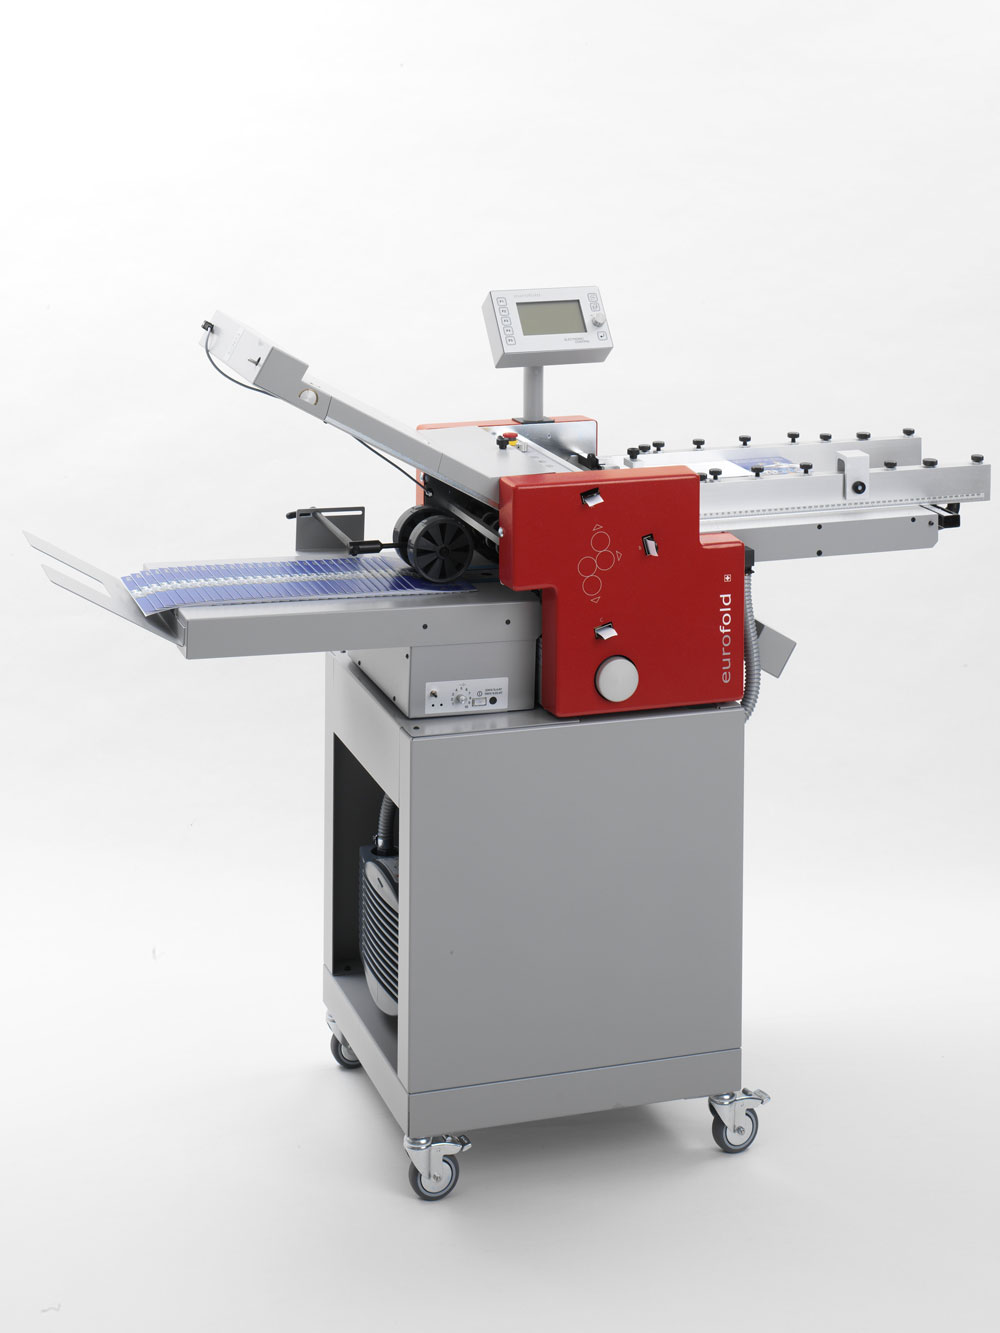 Eurofold 245 SM Suction Folder